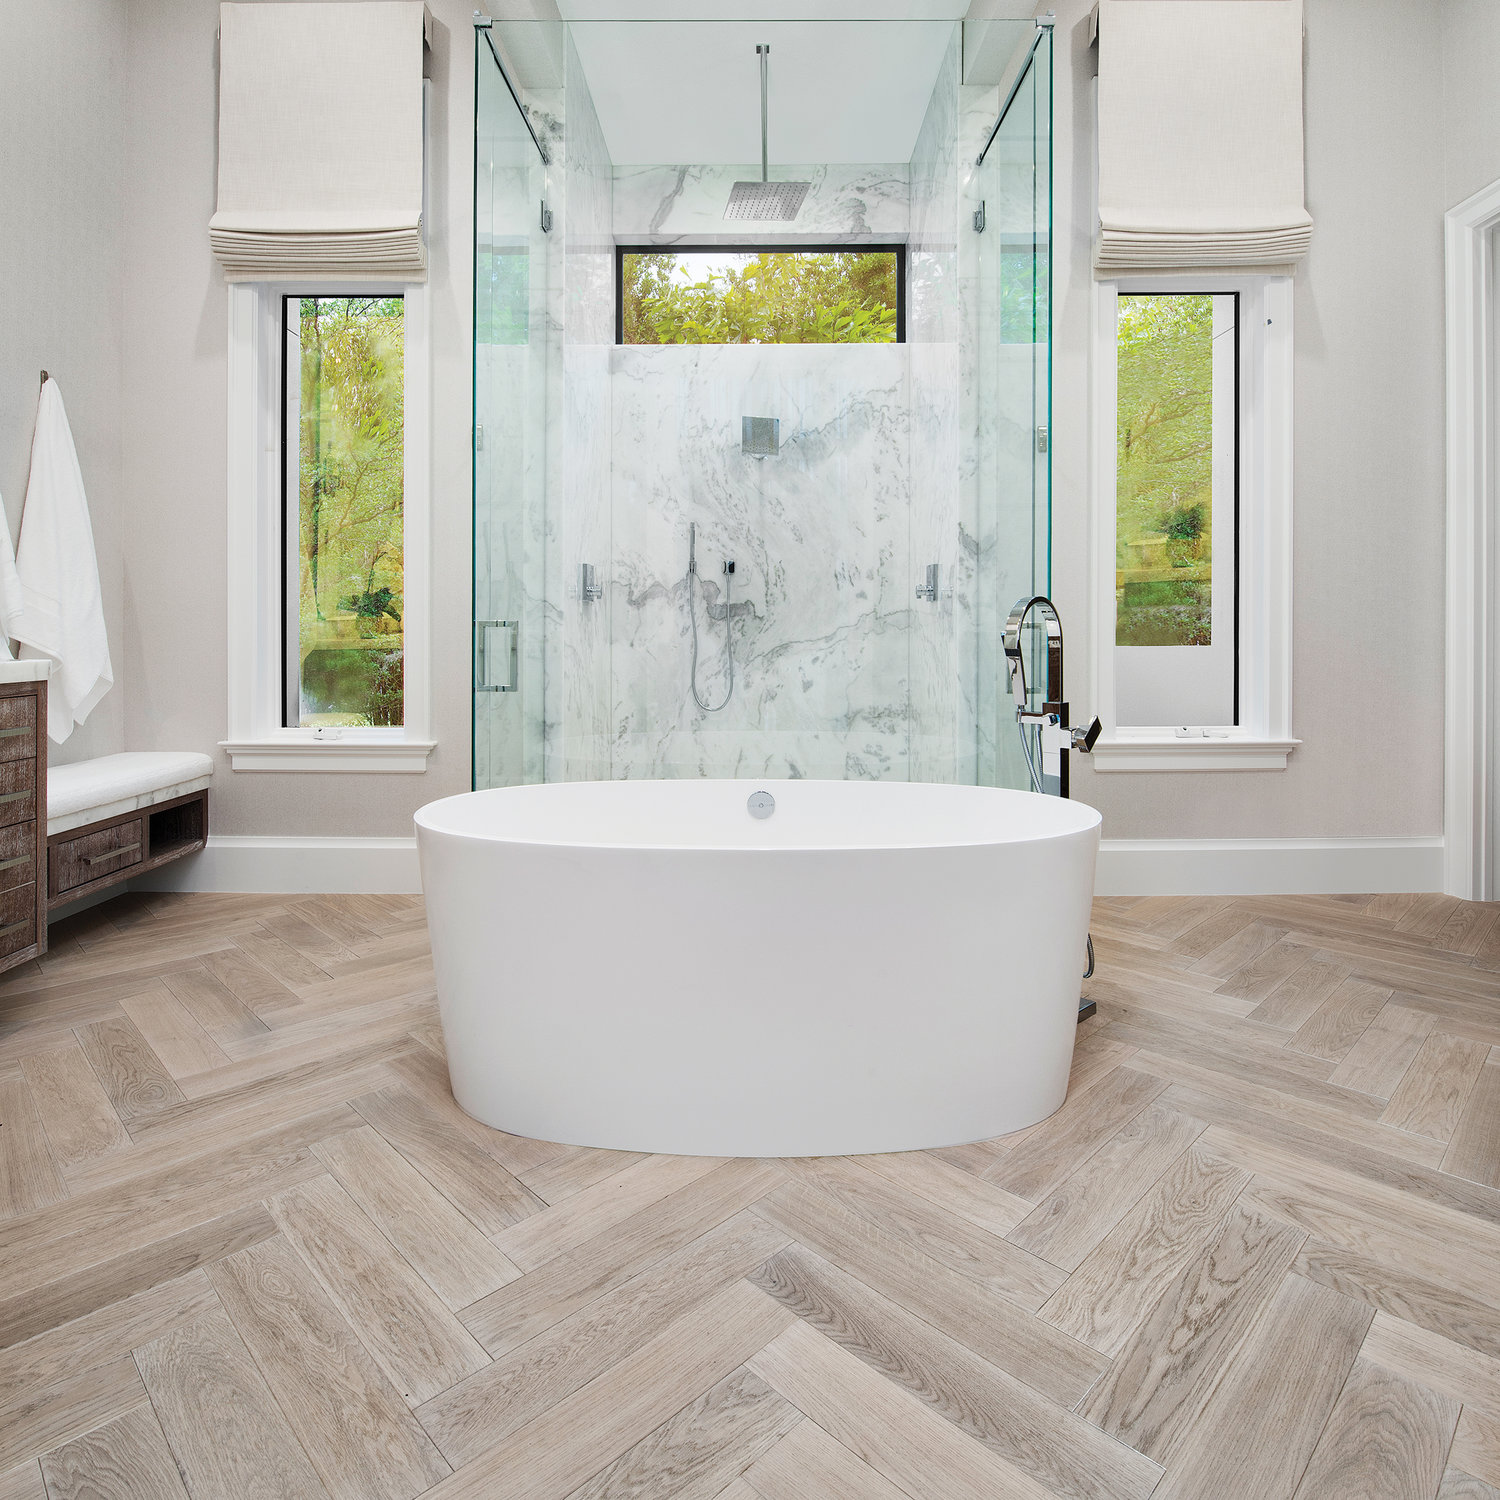 Here, herringbone has been used to create a solid and artistic foundation for this spa-like space. The different angles in this flooring pattern means the tones and colors will change slightly creating movement in the room.